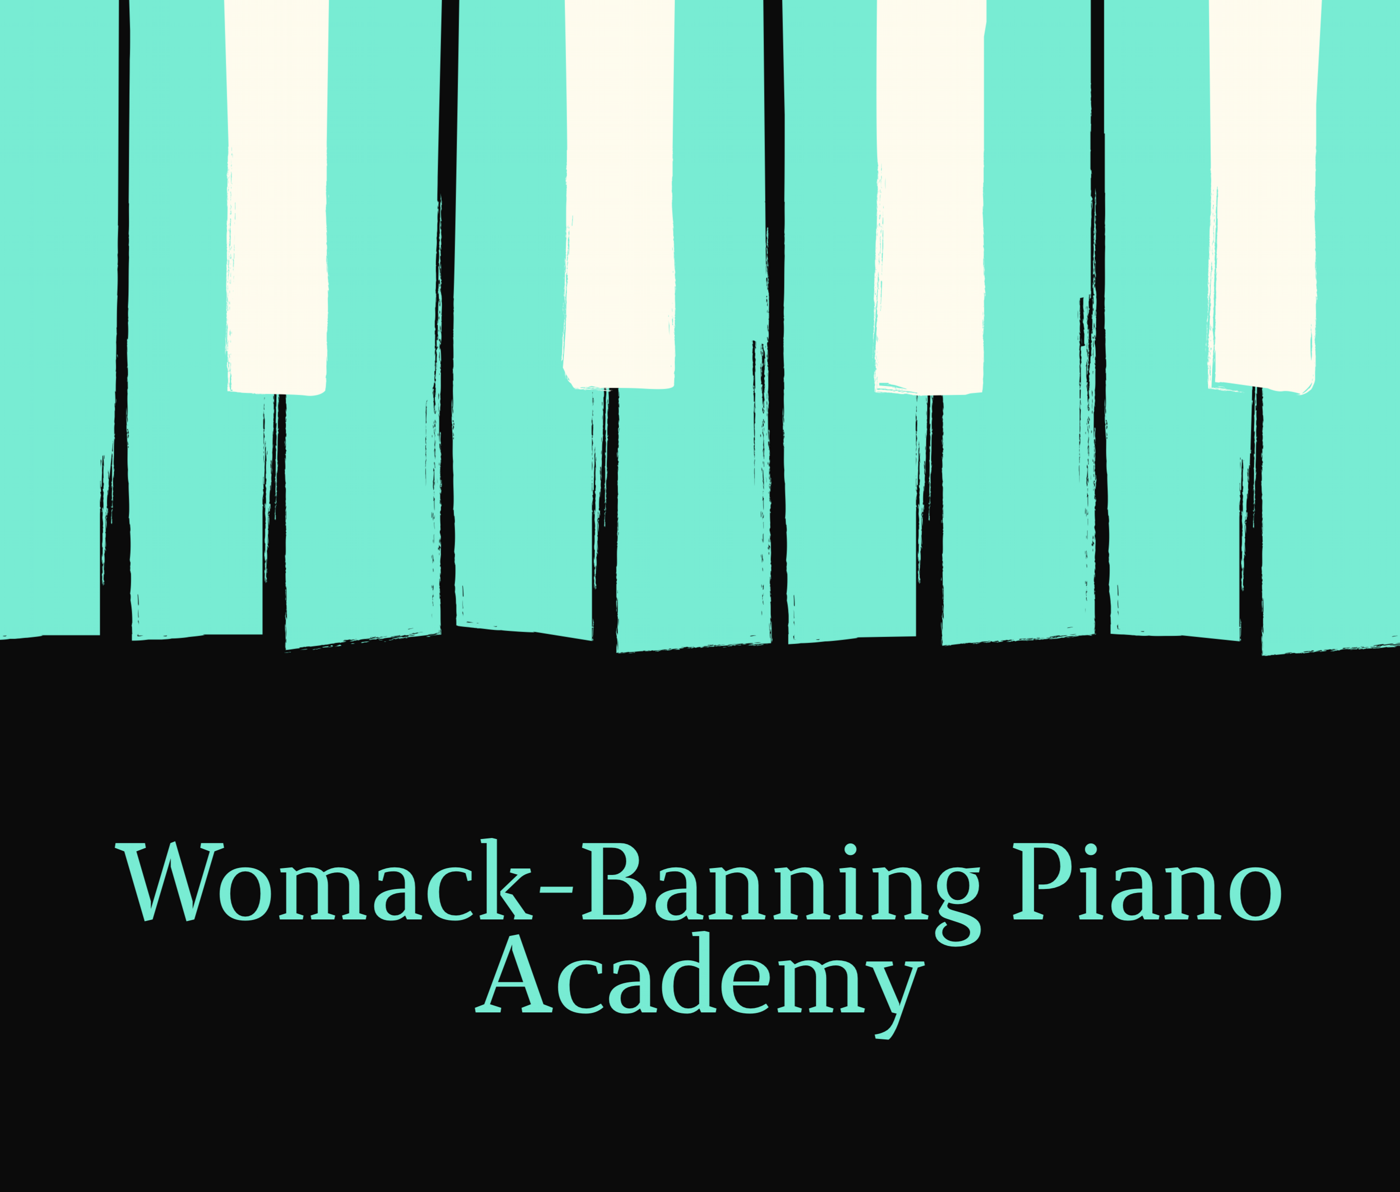 Womack-Banning Piano Academy